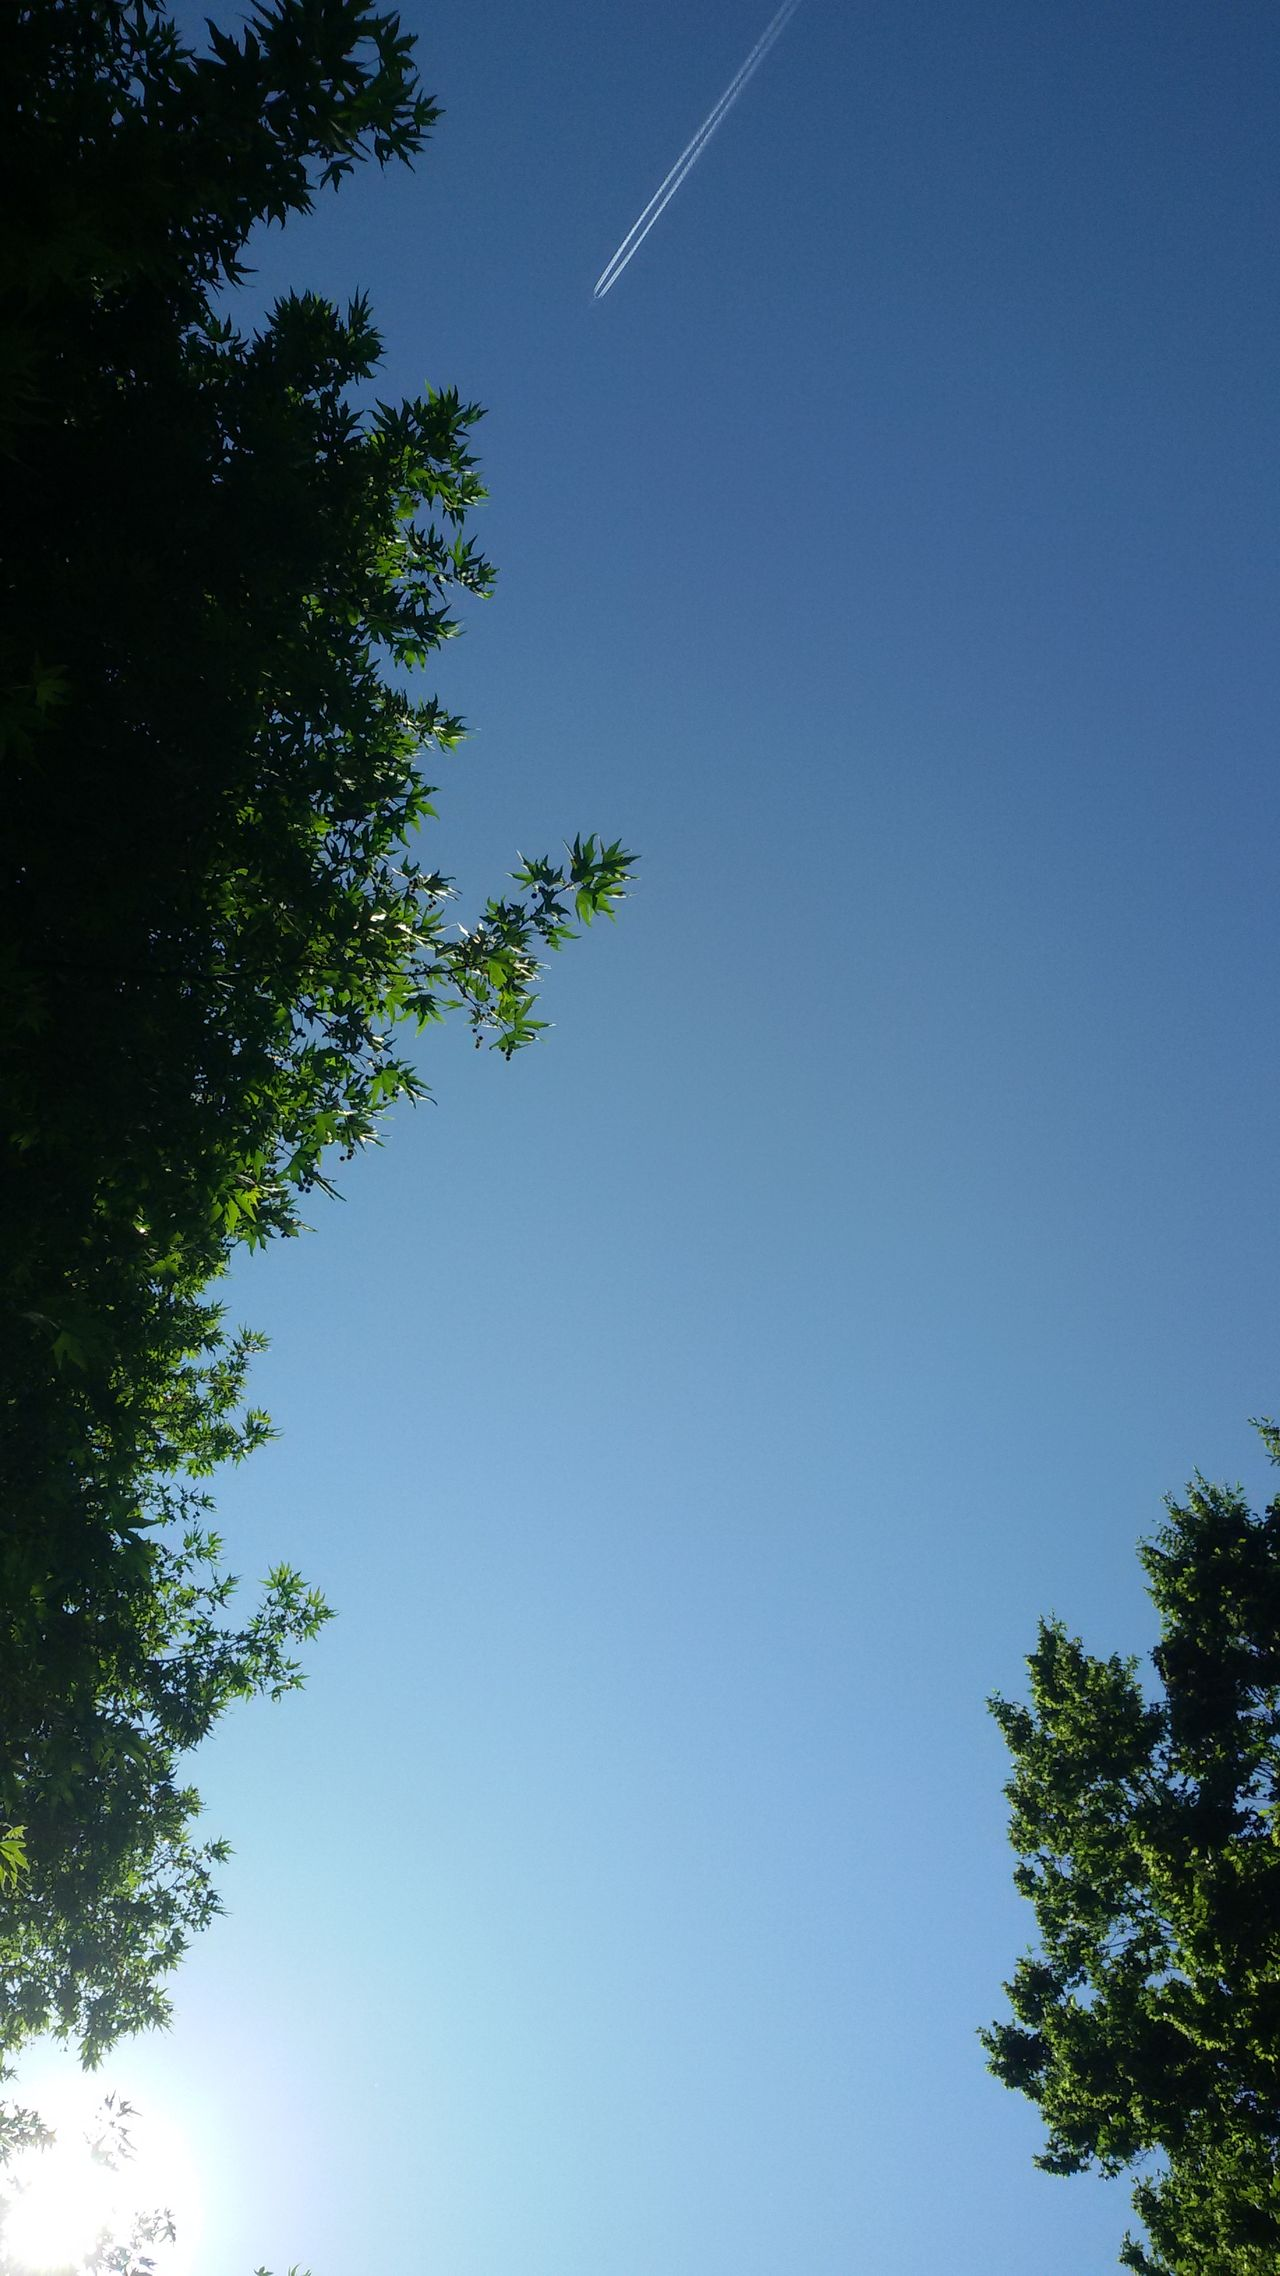 The sky. Sky Blue Nature Clear Sky Airplane Jet Trees Leaves Light Angle